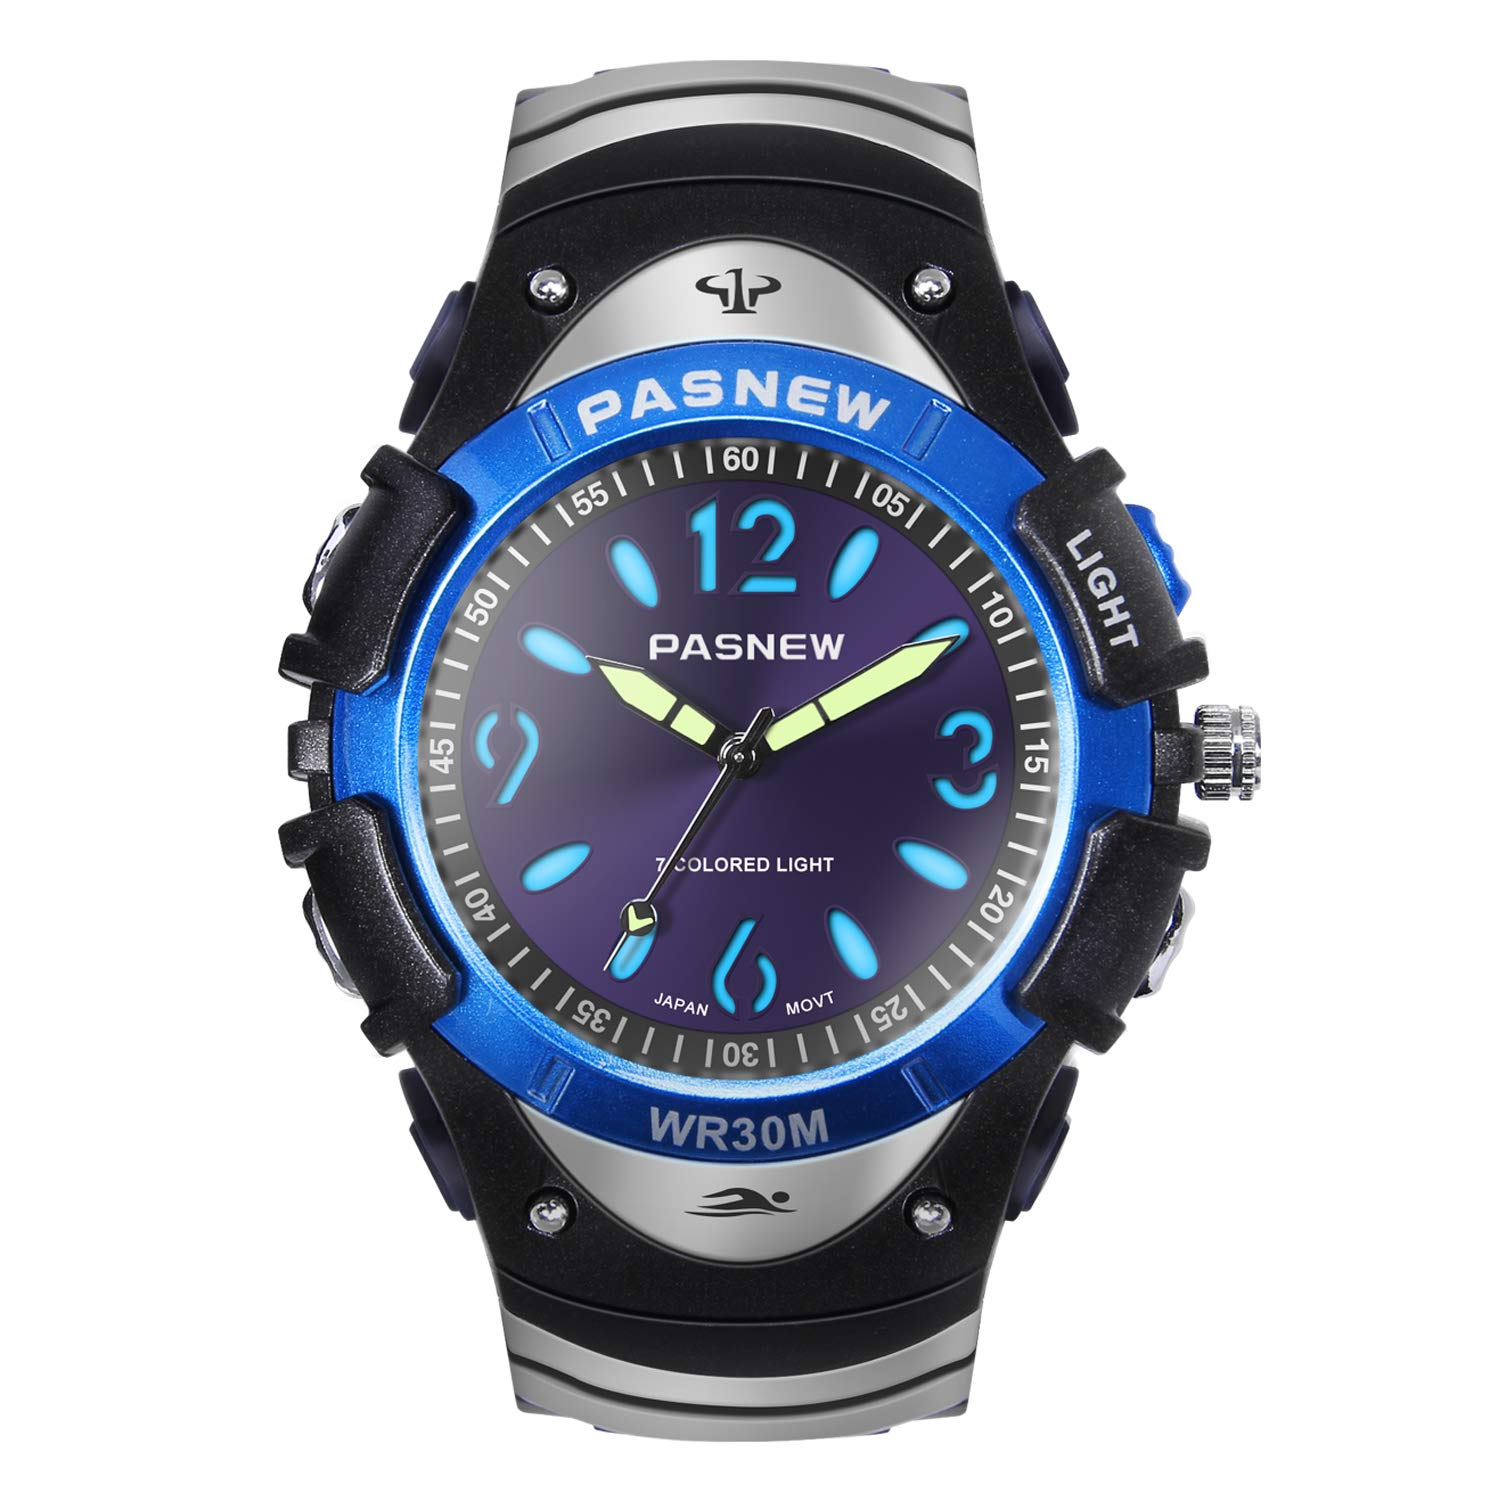 HIwatch Boys Watches Classic Quartz Waterproof Wrist Watch Sport Analog Watch with Multi Coloured Lights for Youth High School Students, Blue by Hiwatch